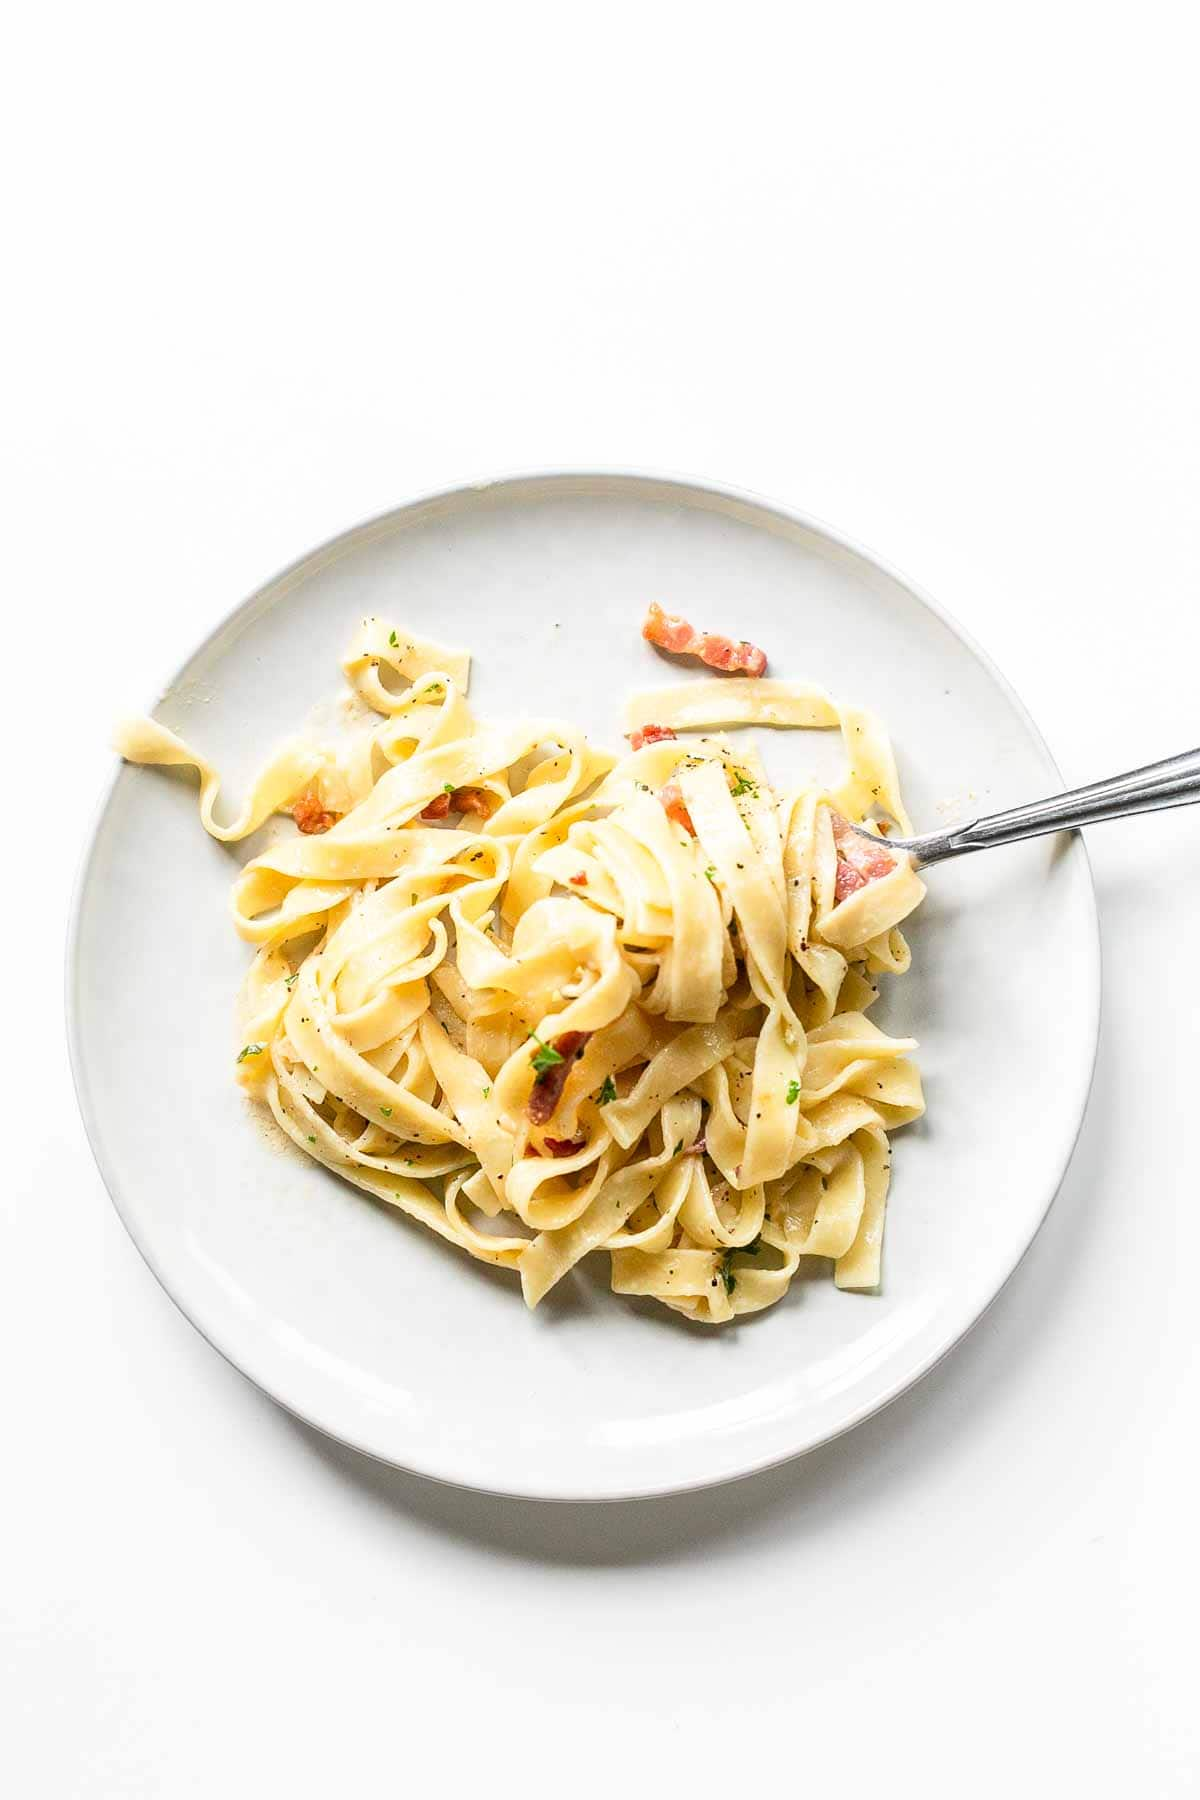 Creamy tagliatelli with bacon is a fast recipe that you have on the table in less than 15 minutes. Super delicious and a great creamy pasta dinner. Visit fastfoodbistro.com for the full recipe #fastfoodbistro #creamypasta #creamytagliatelle #pastadinner #dinner #pasta